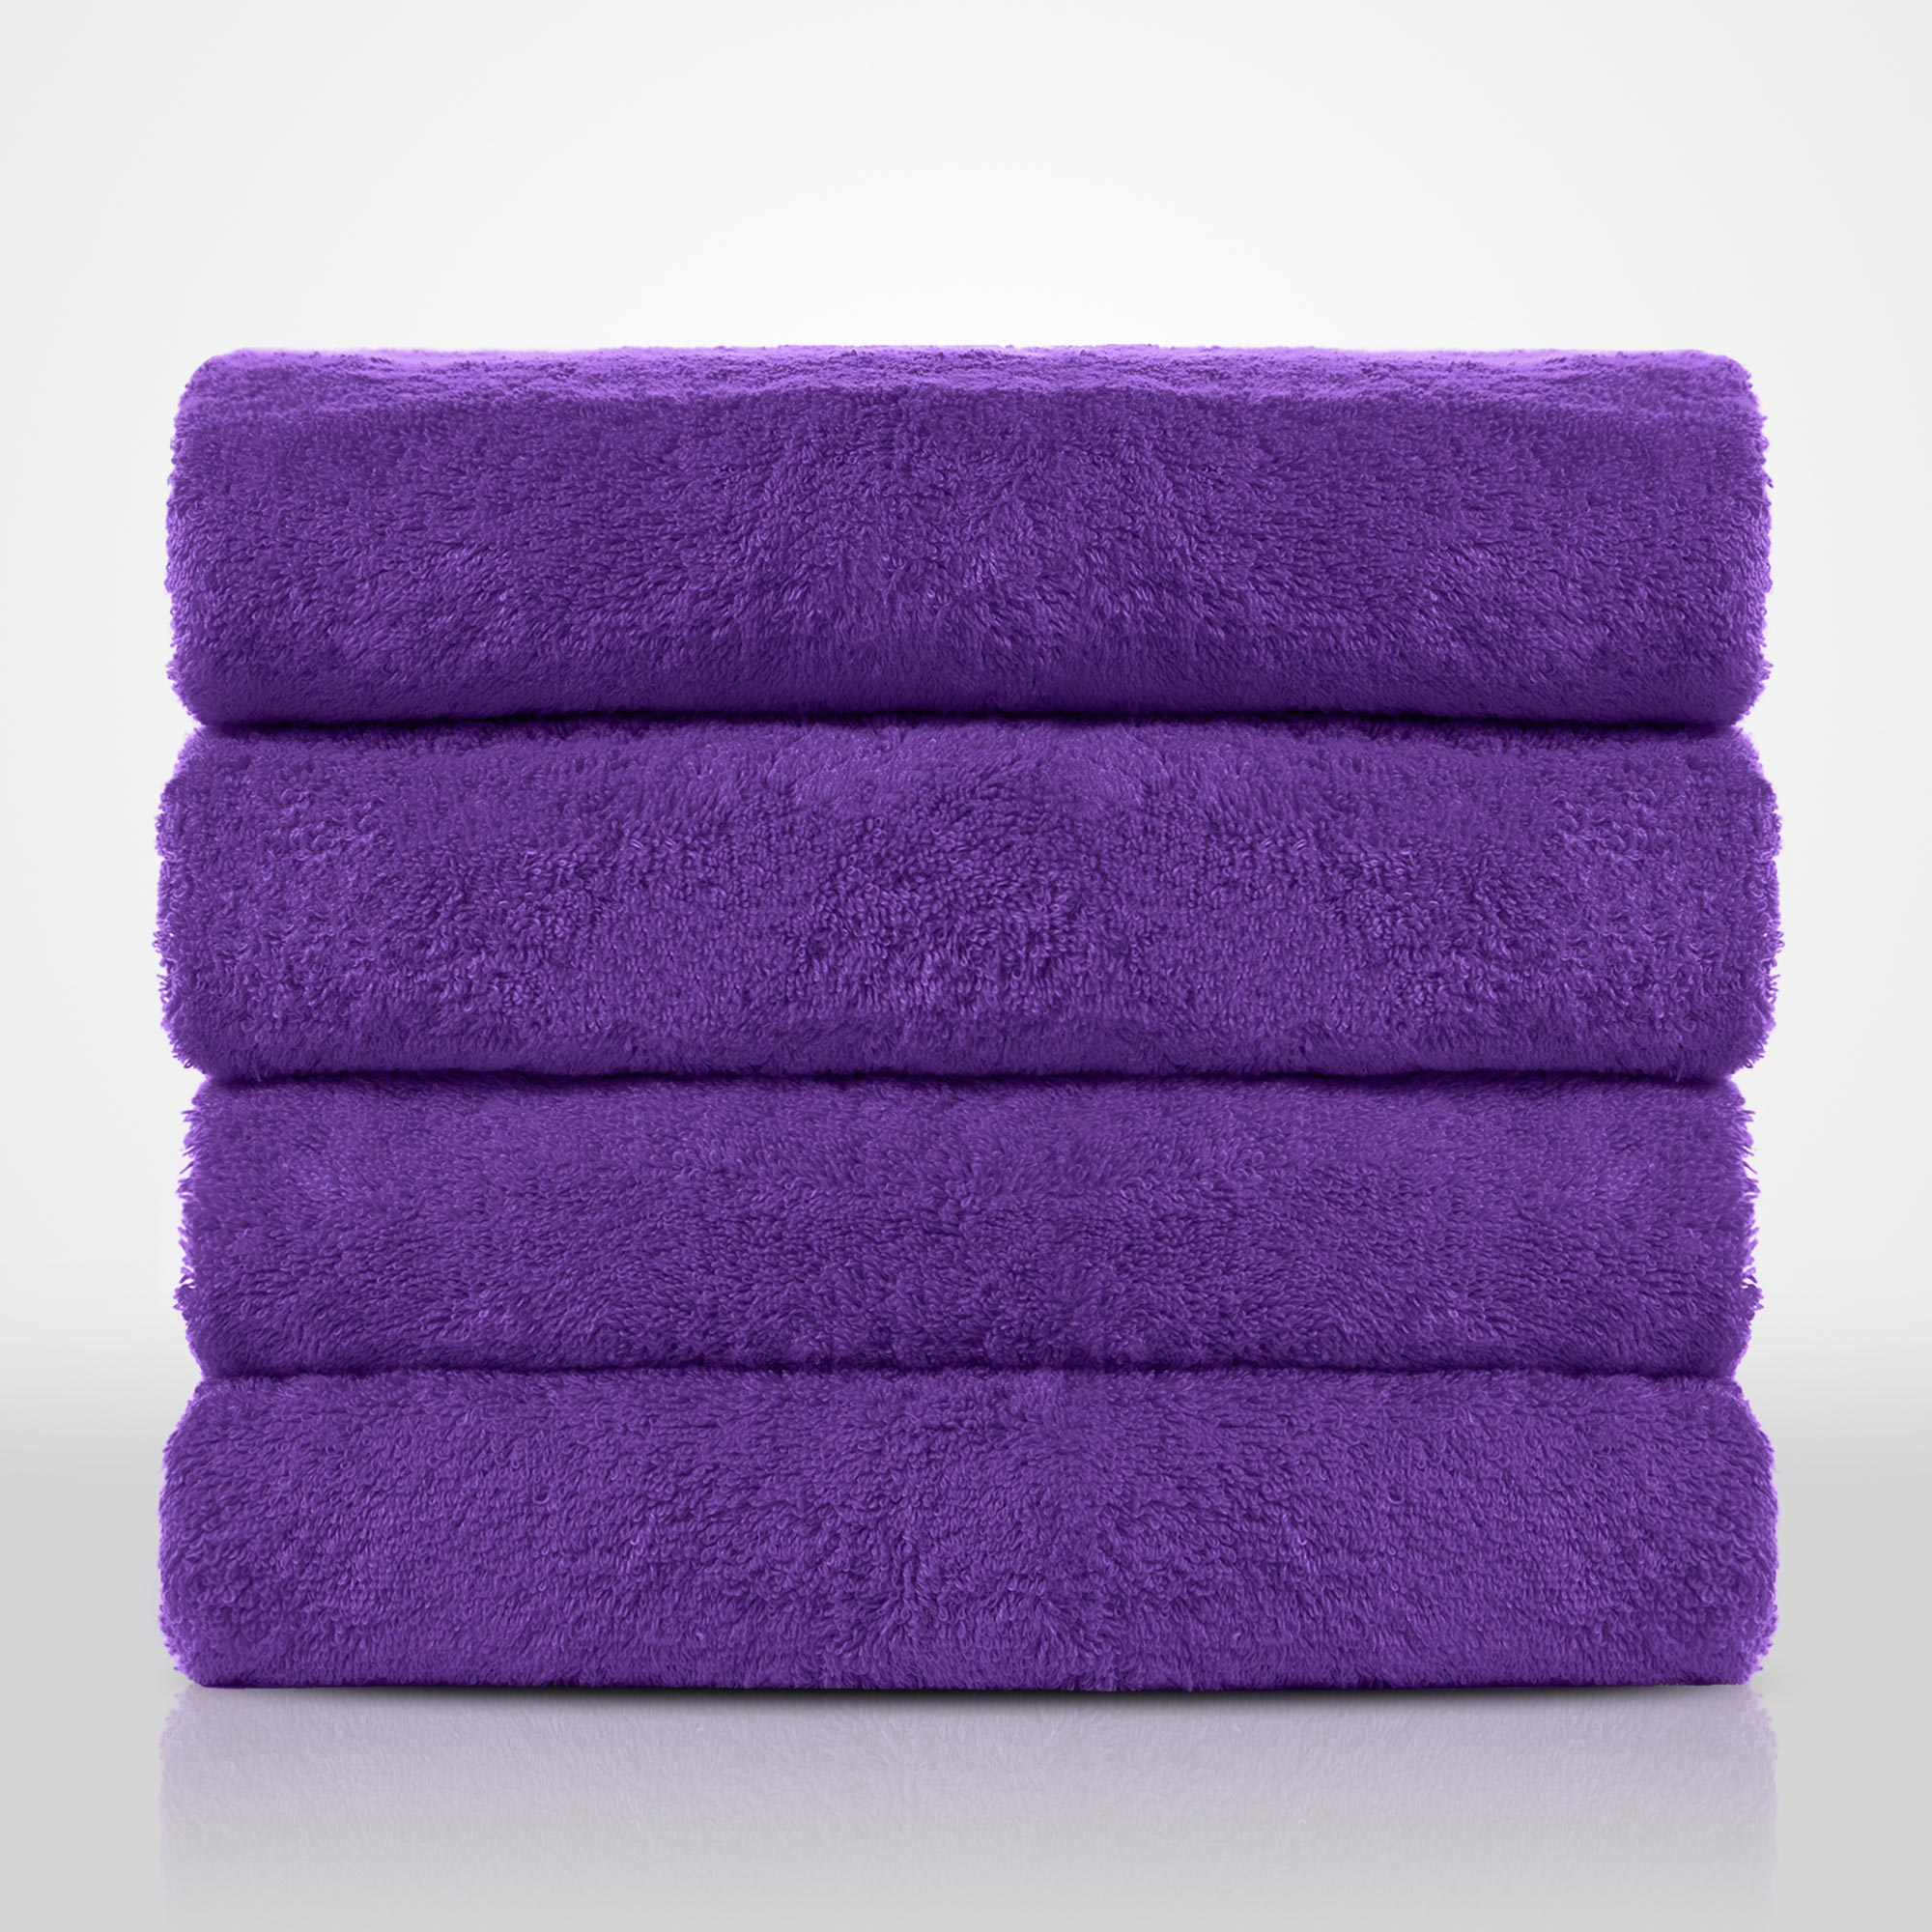 "35""x 60"" - 100% Turkish Cotton Purple Terry Bath Towel-Robemart.com"